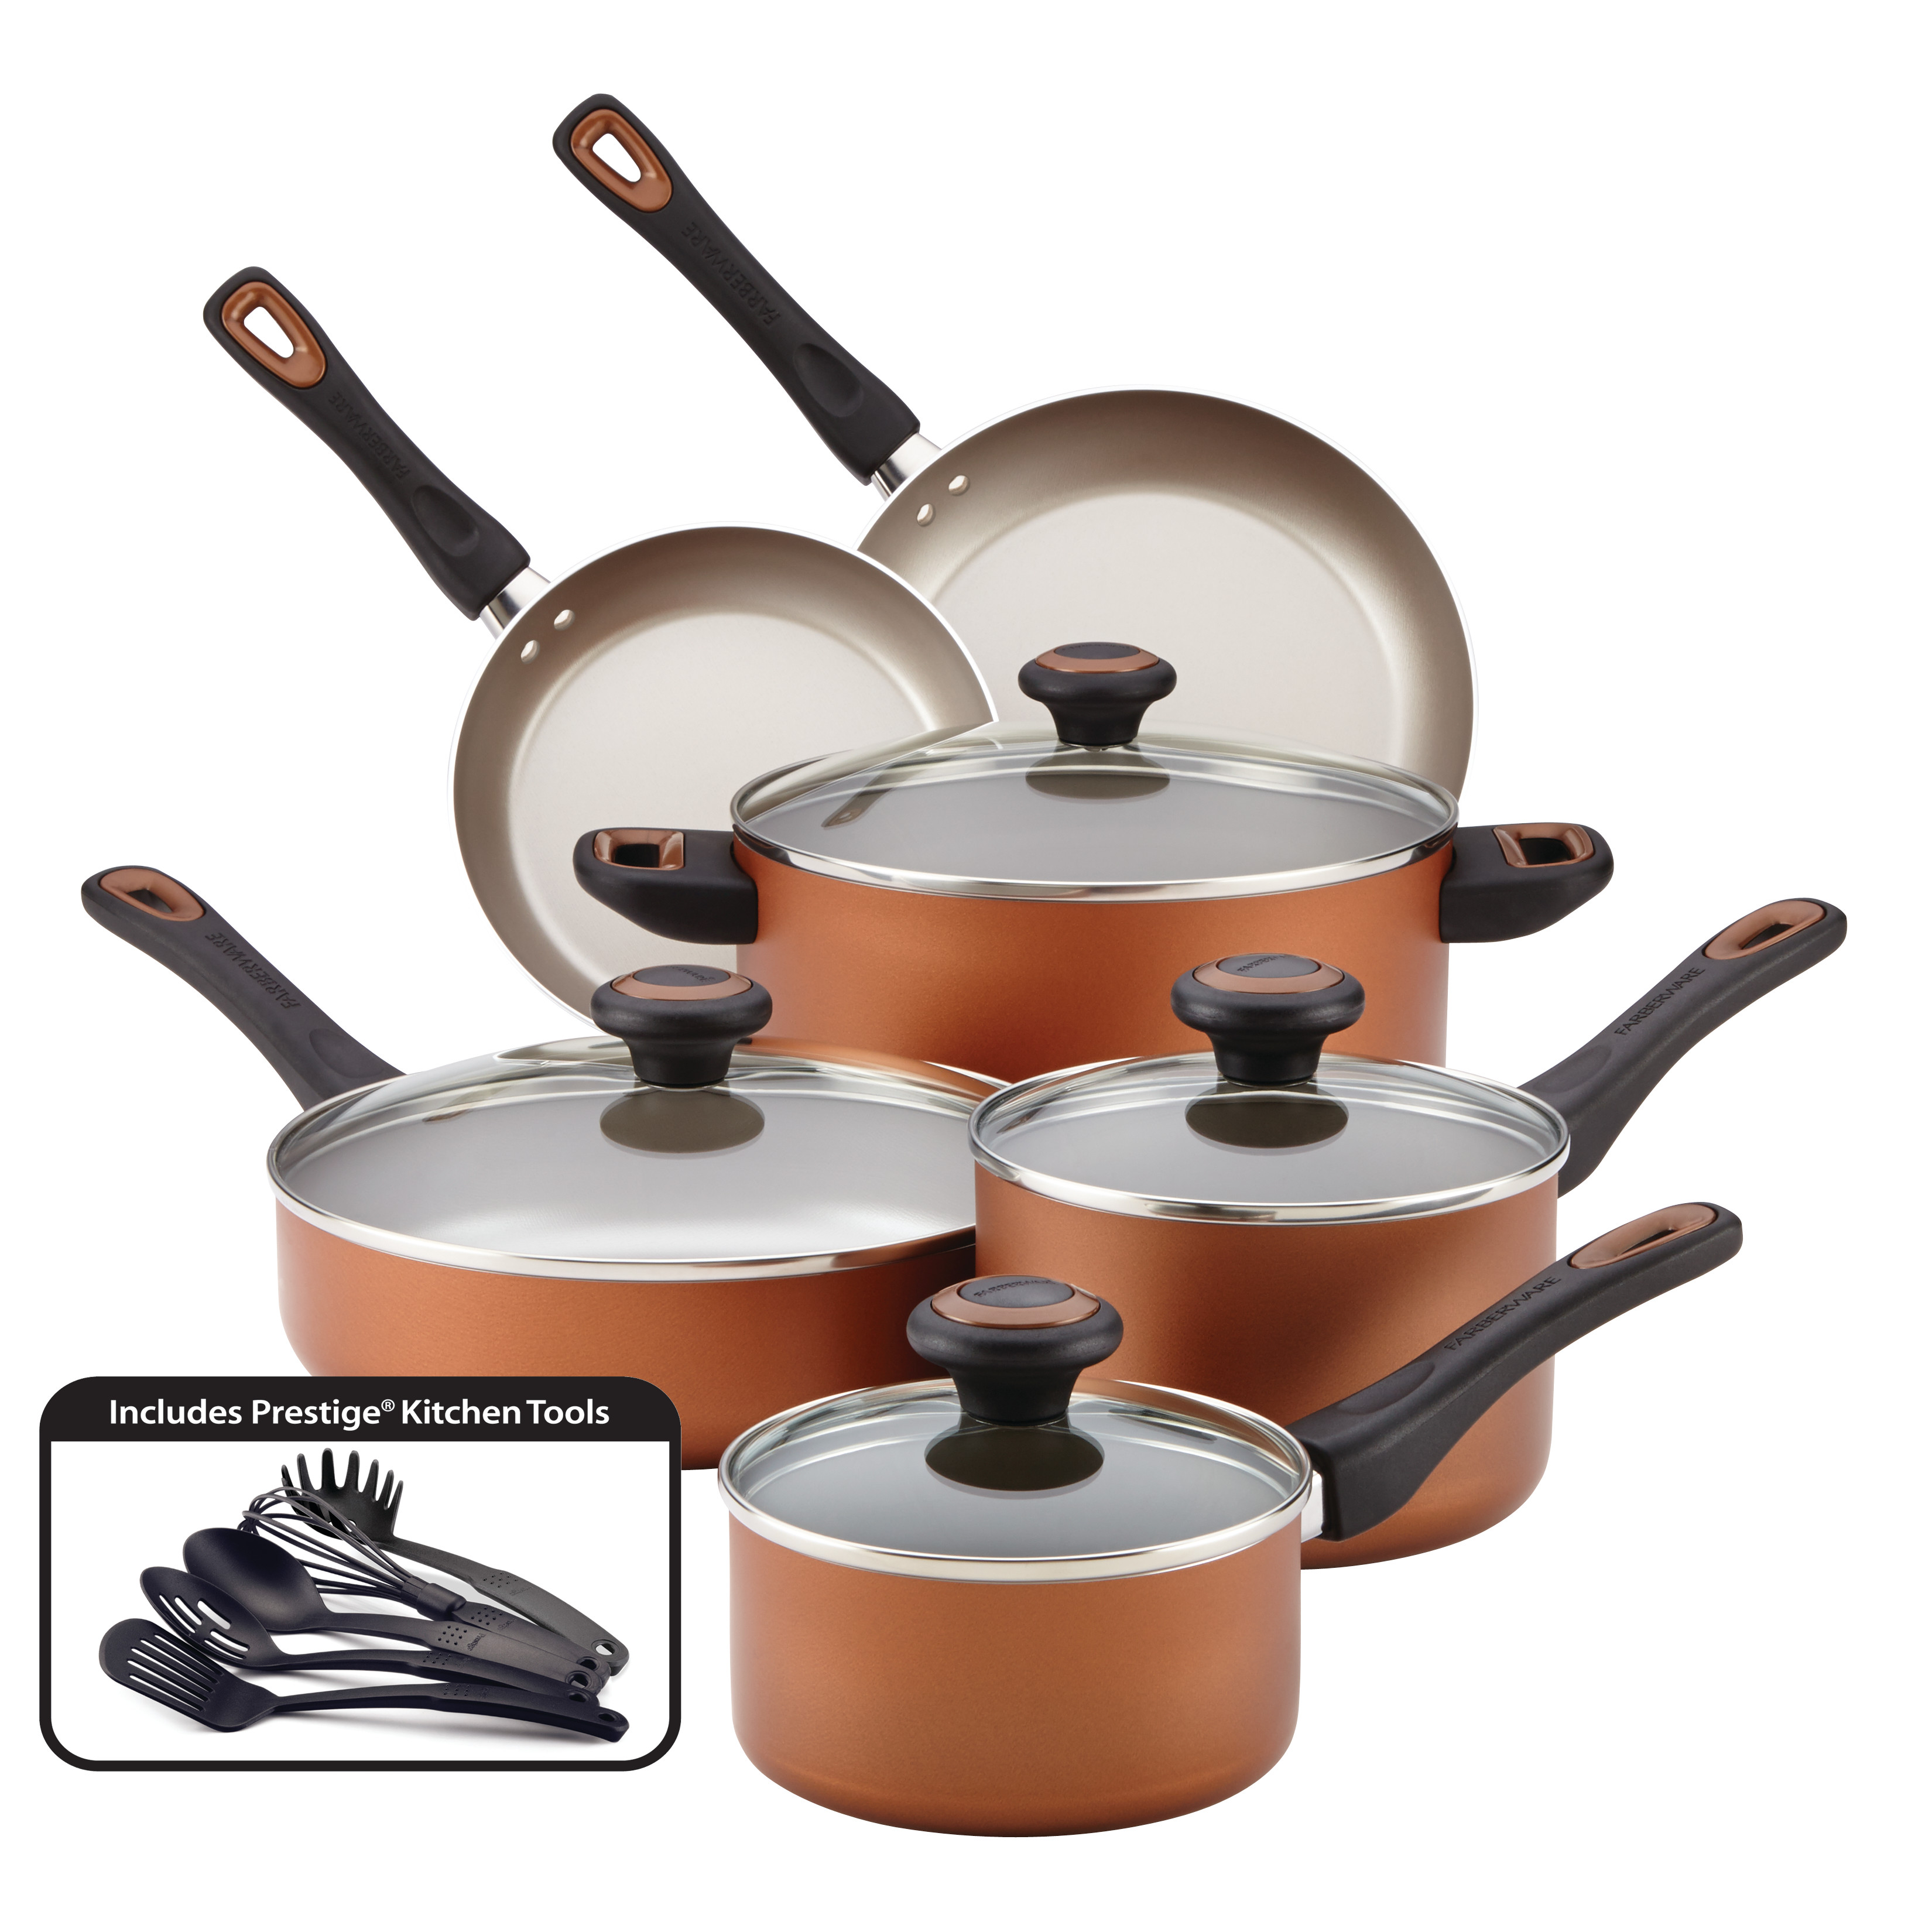 Farberware Dishwasher Safe High Performance Nonstick 15-Piece Cookware Set, Copper